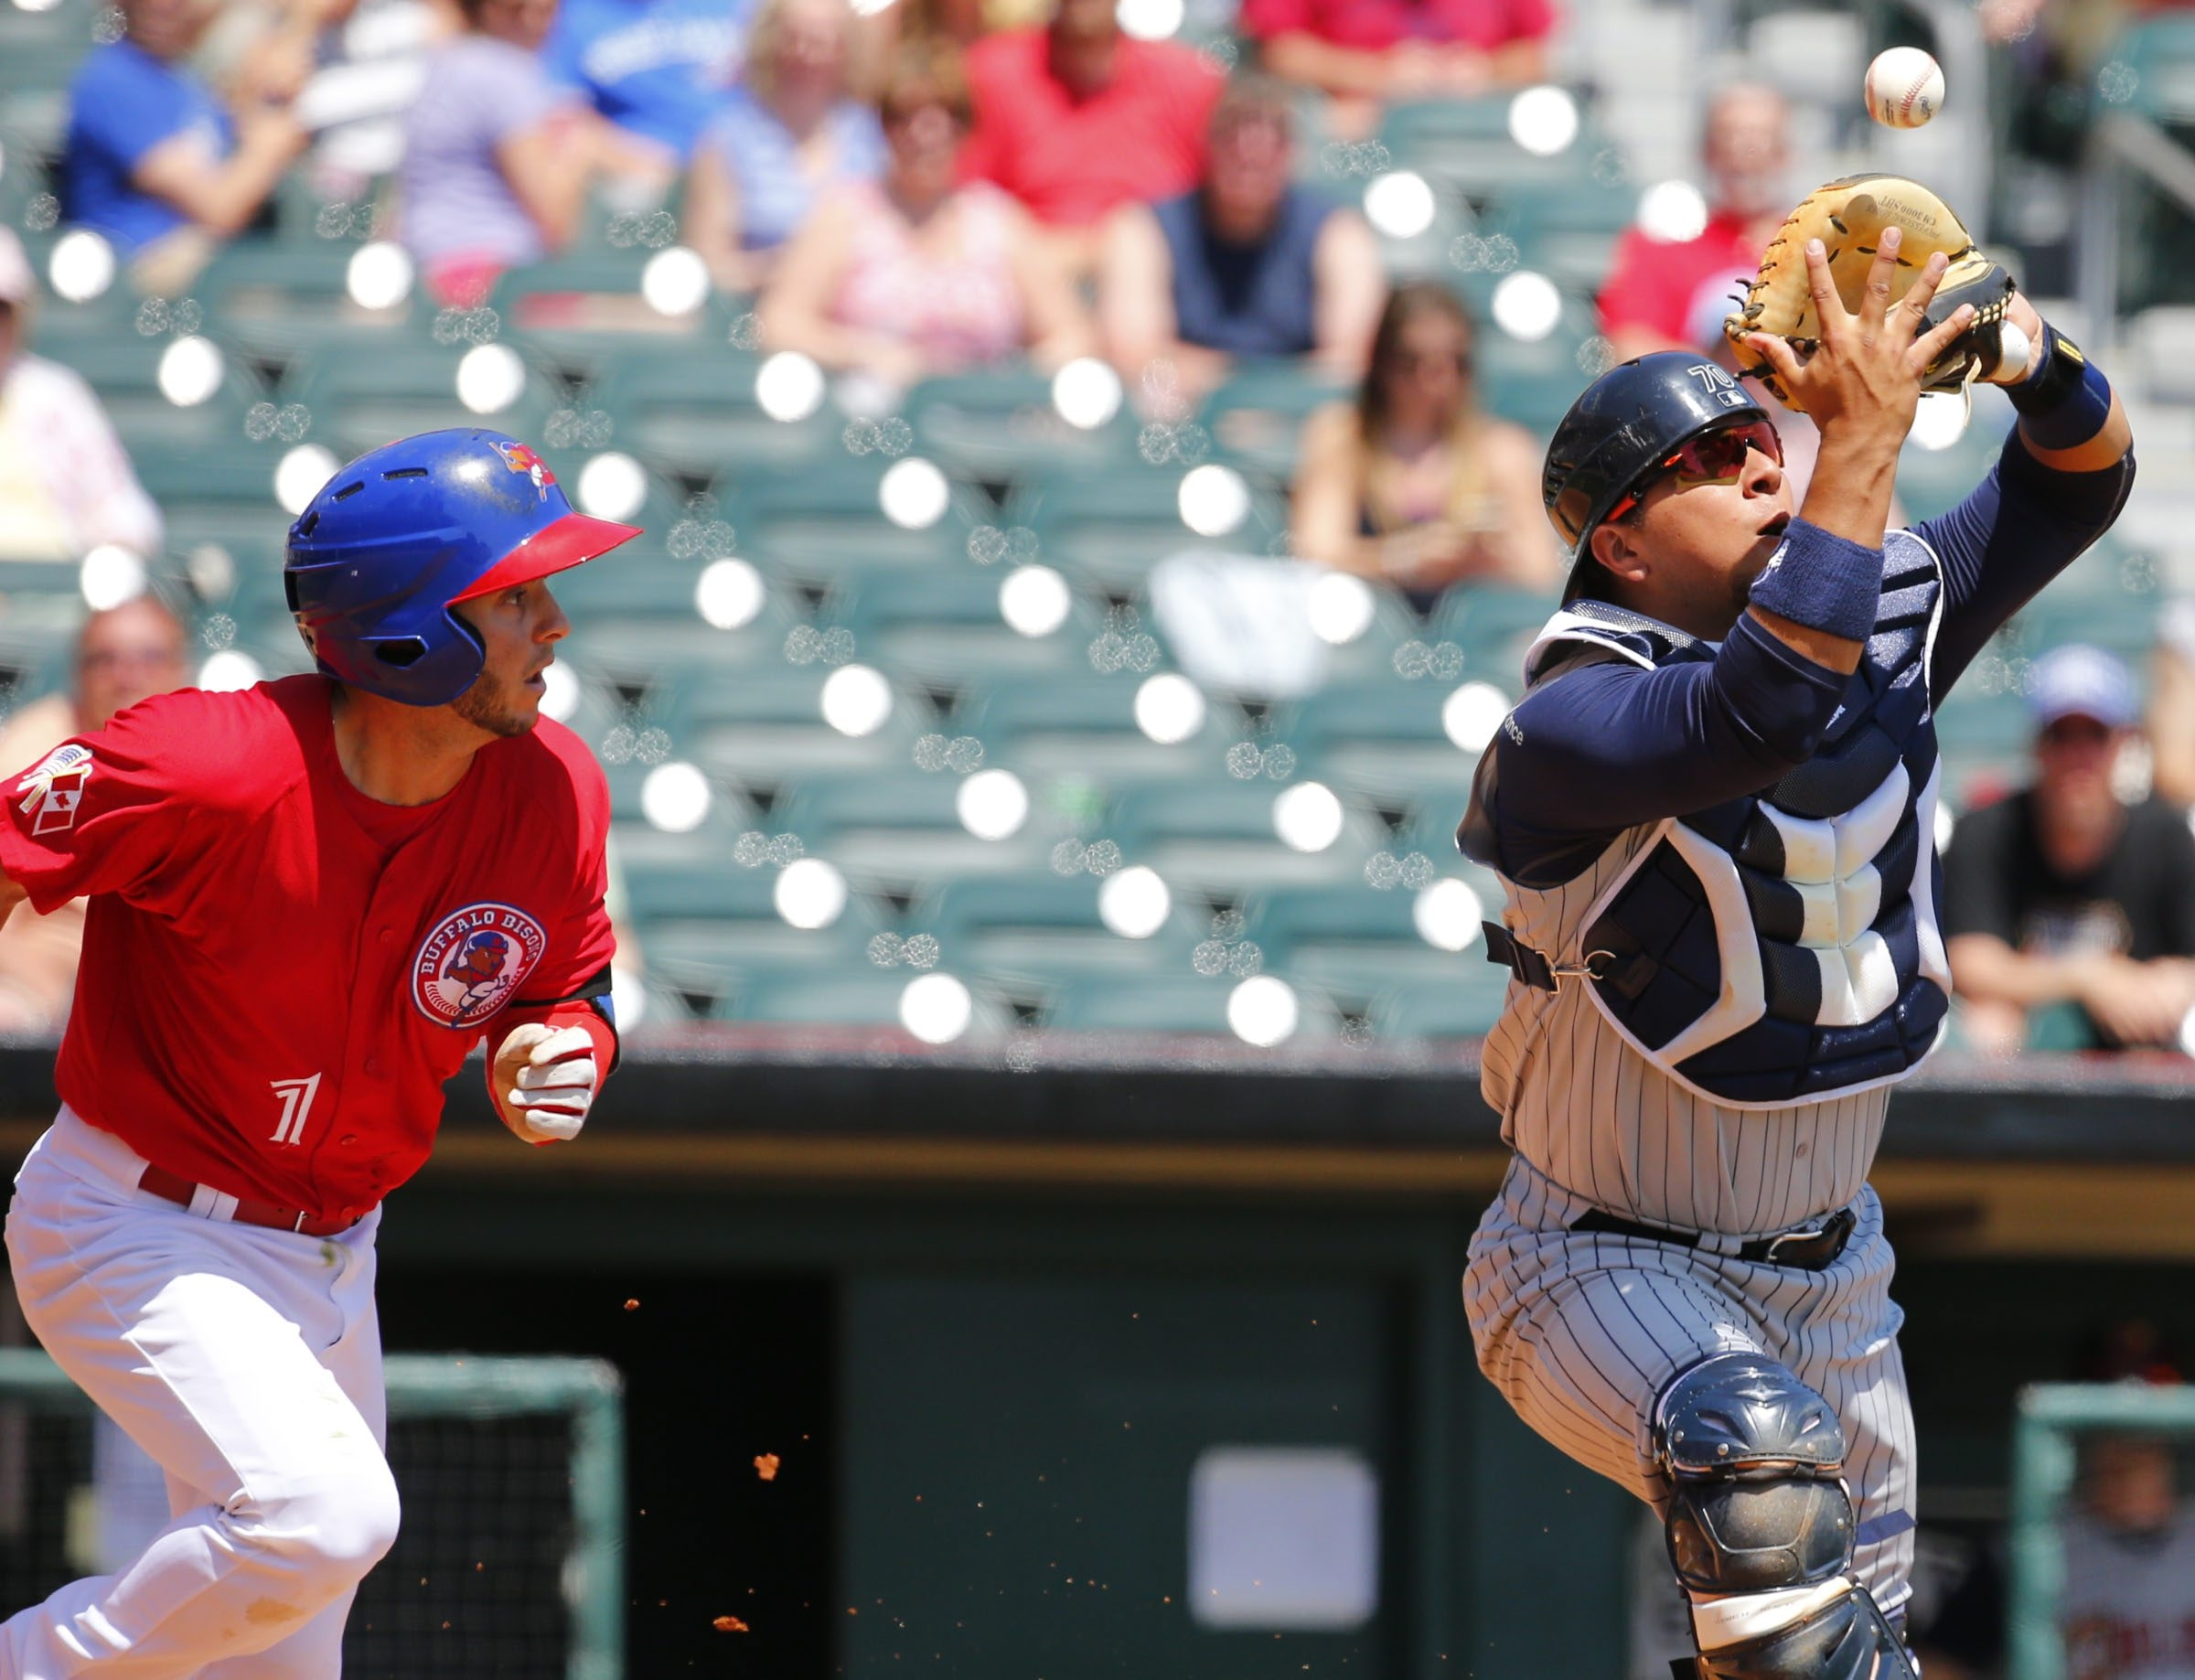 The Bisons' Jonathan Diaz pops out to Toledo Mud Hens catcher Miguel Gonzalez attempting to bunt in the third inning at Coca-Cola Field on Sunday.